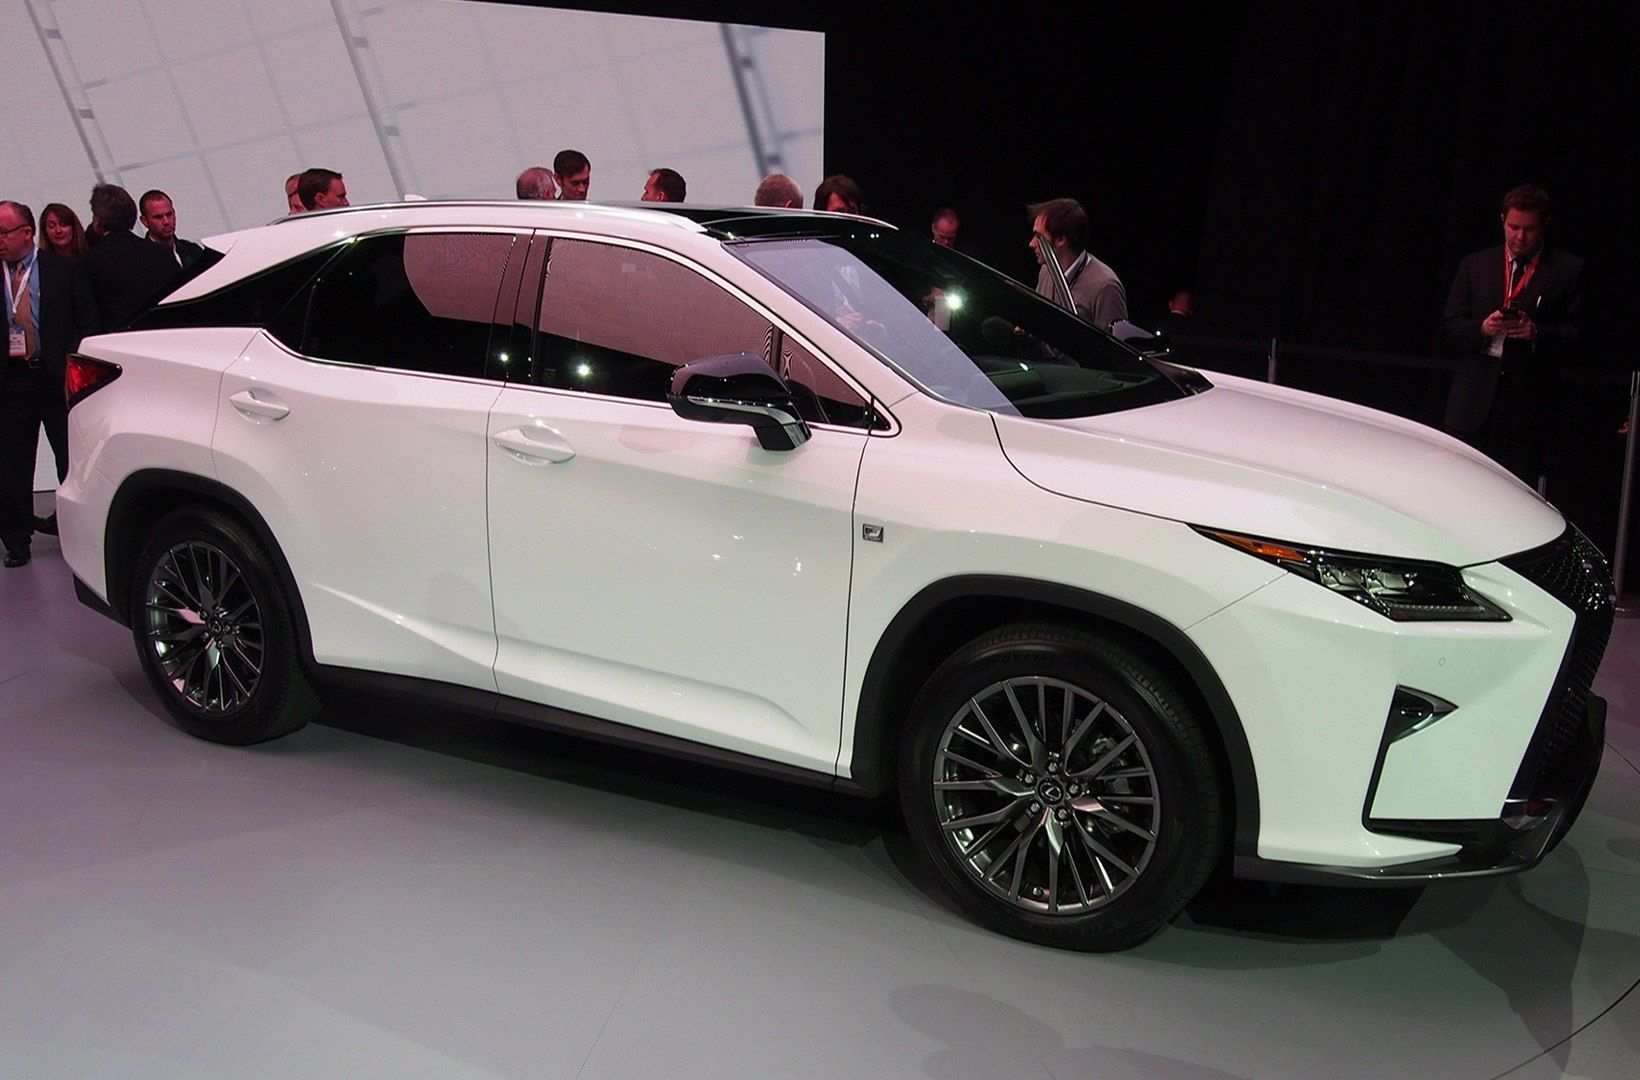 65 All New Lexus Suv 2020 Price And Release Date